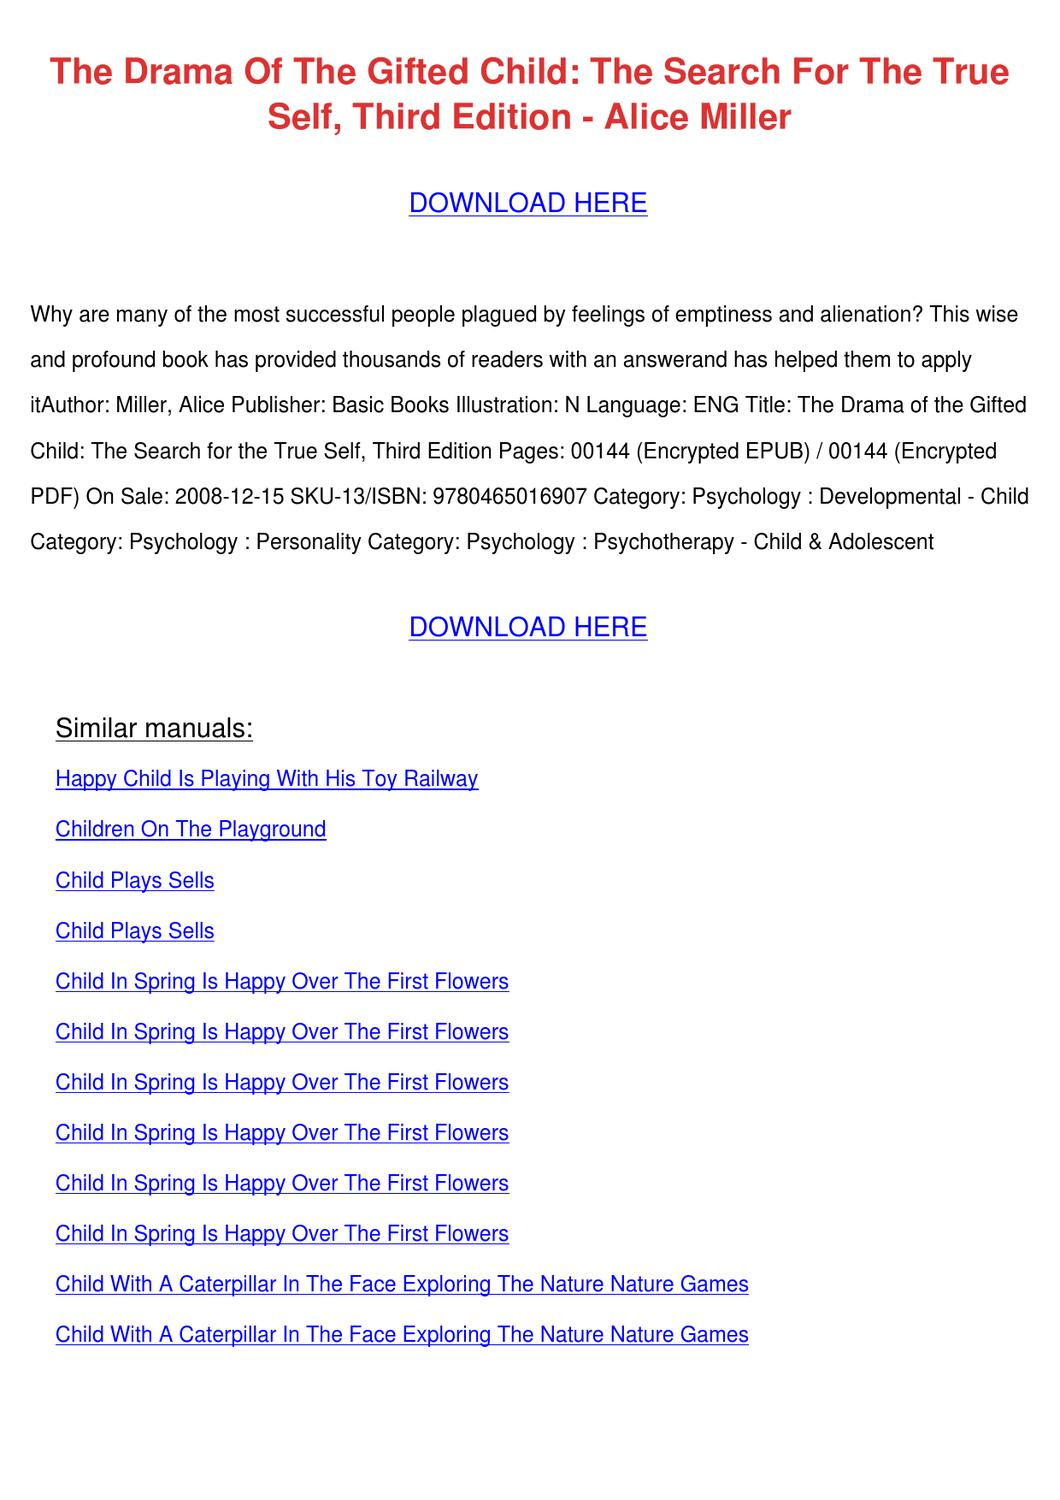 the drama of the gifted child epub